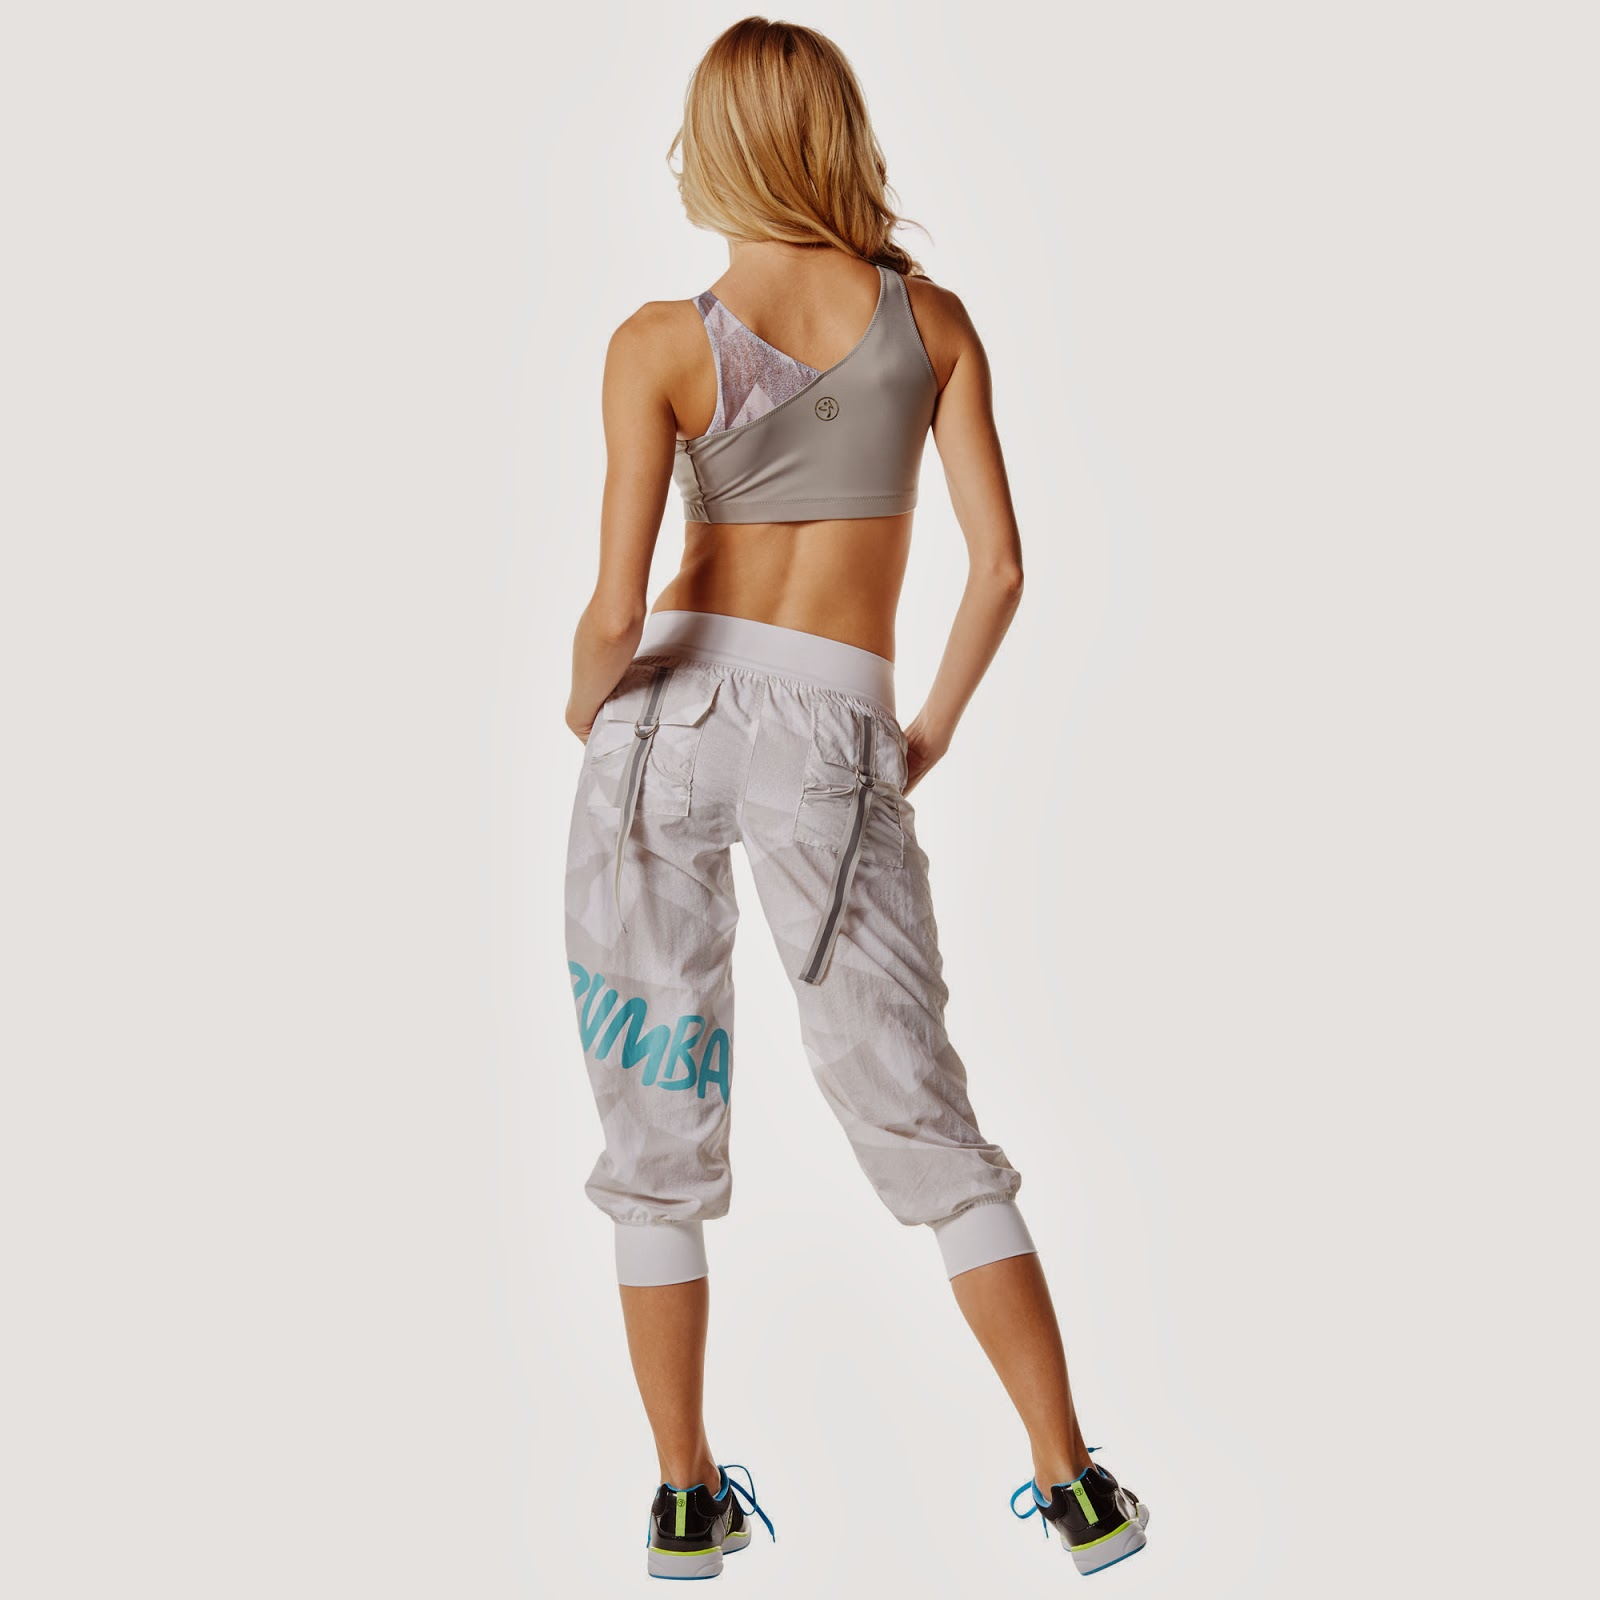 http://www.zumba.com/en-US/store/US/product/print-perfect-cargo-capri?color=Wear%20It%20Out%20White